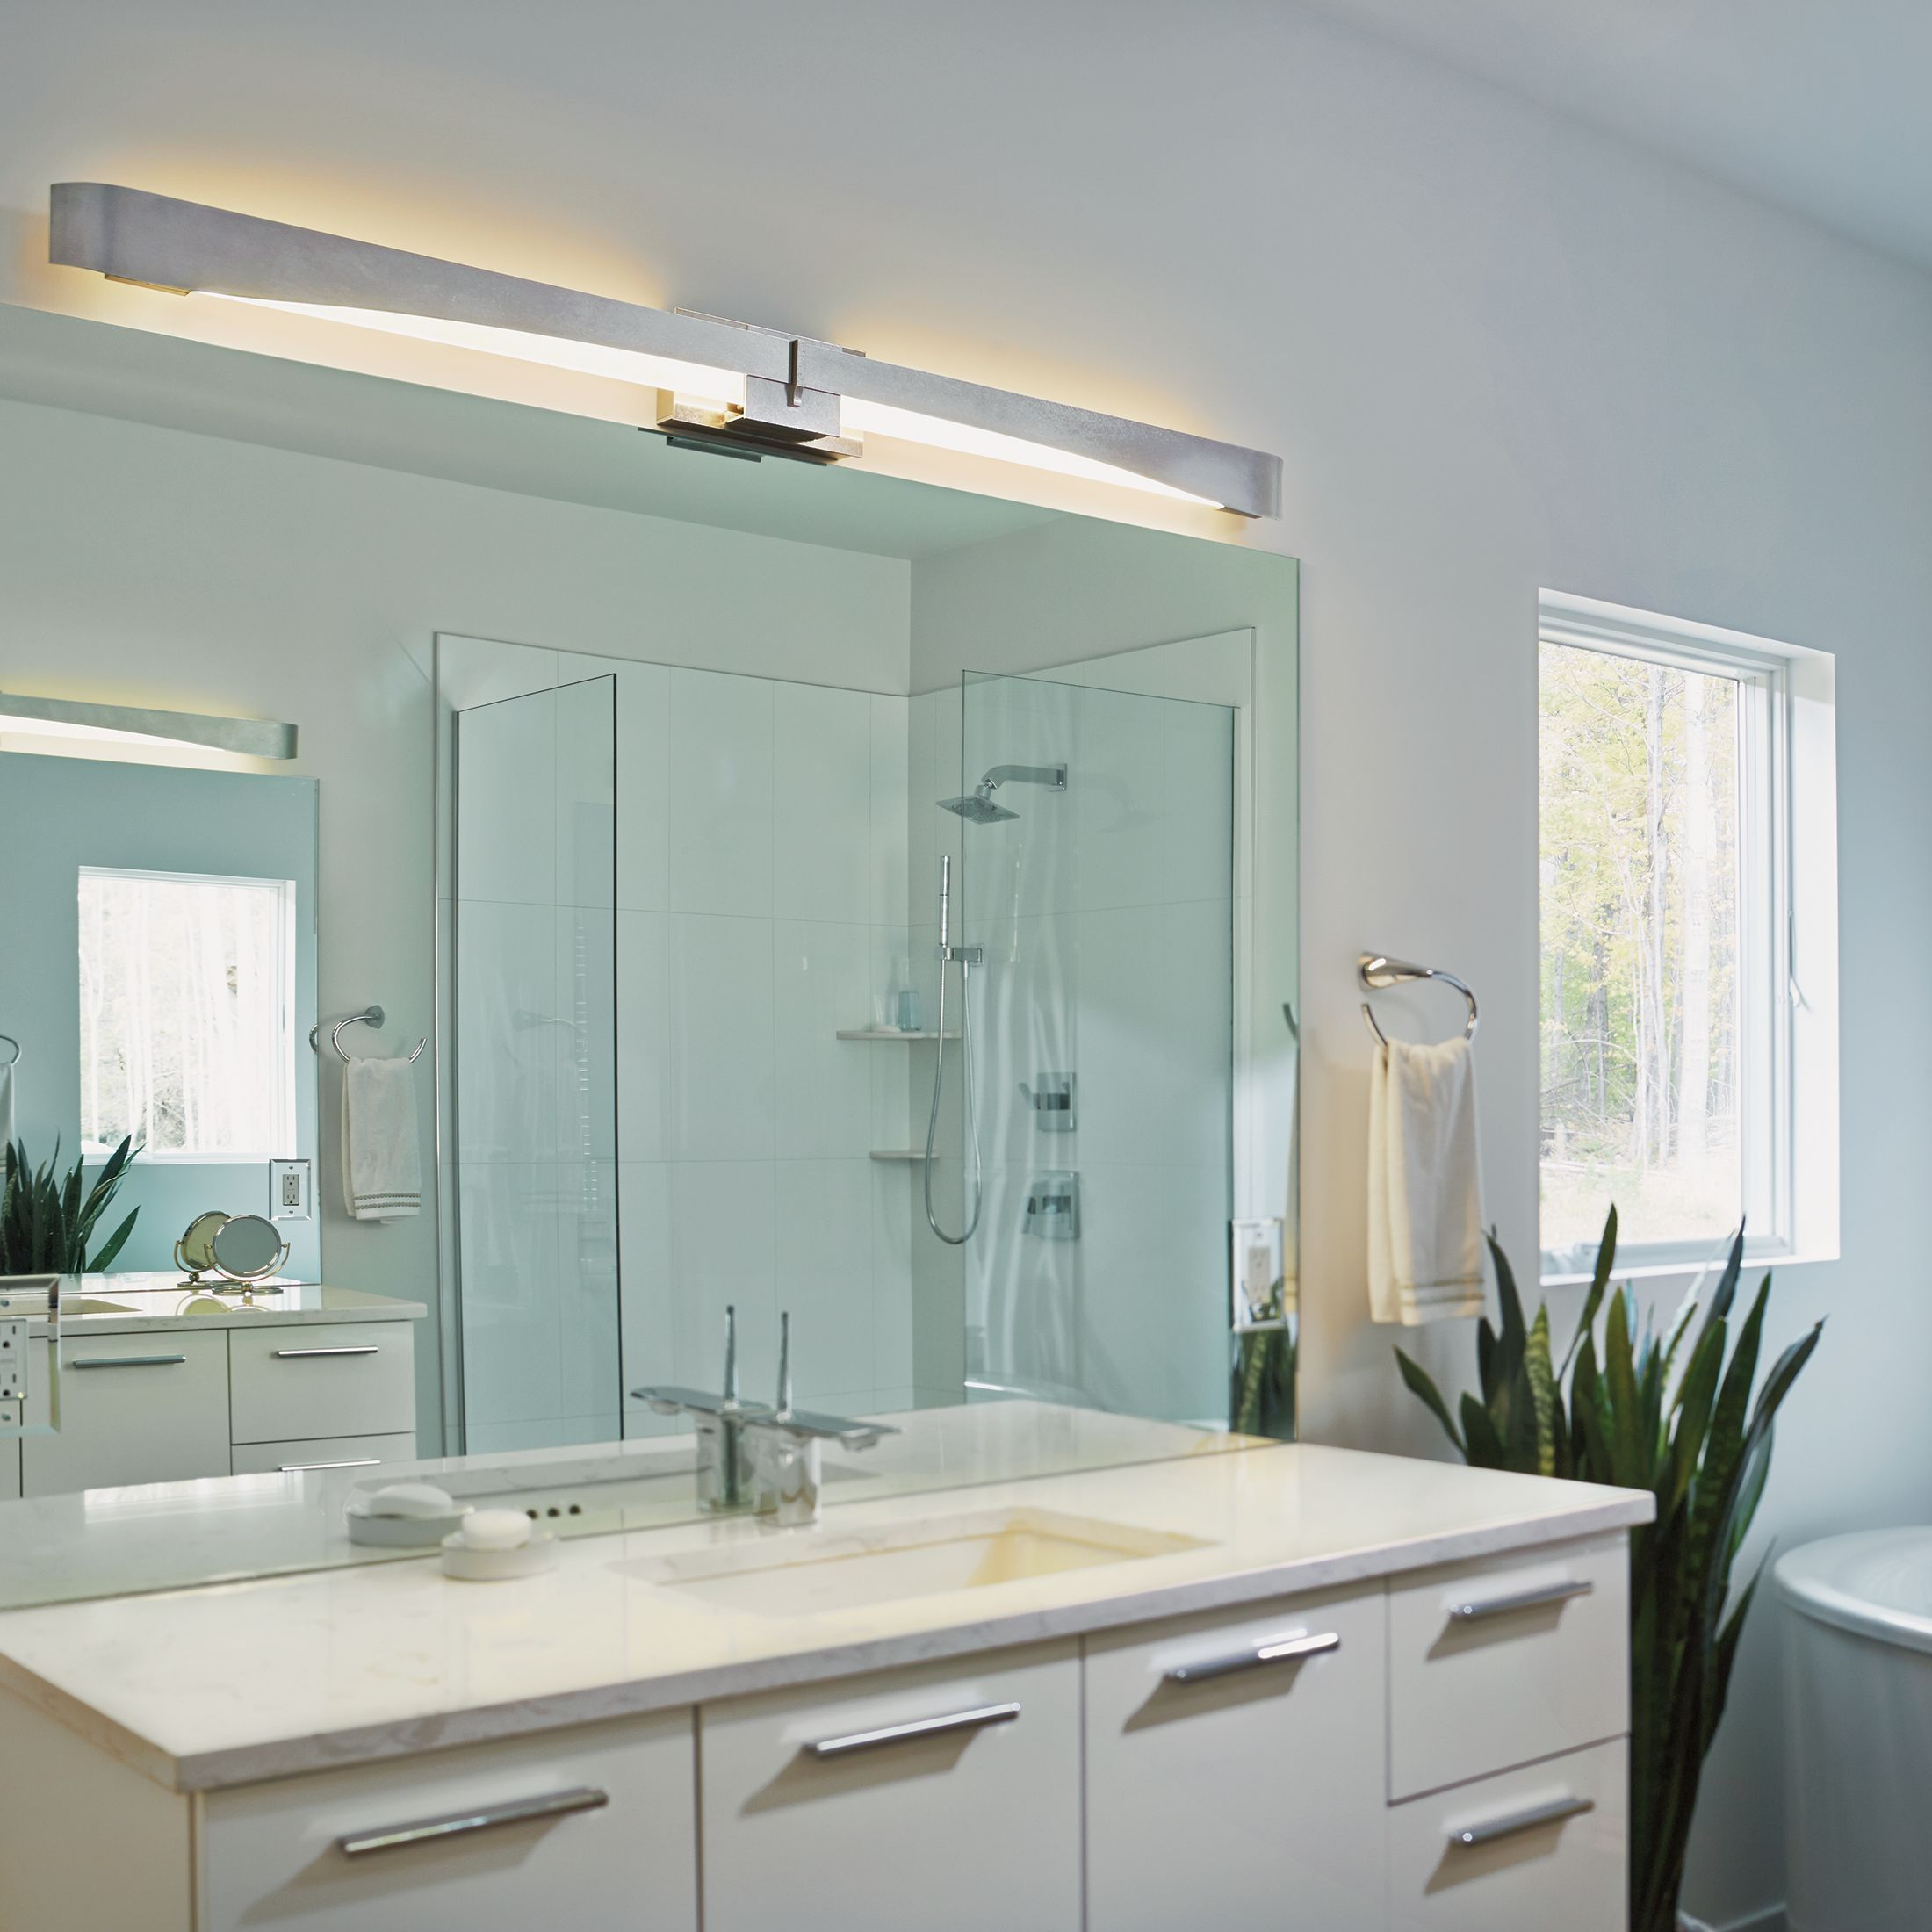 Refined Yet Stylish The Lynk Bath Vanity Light Simultaneously Complements A Wide Range Of: Hubbardton Forge - Our Favorites